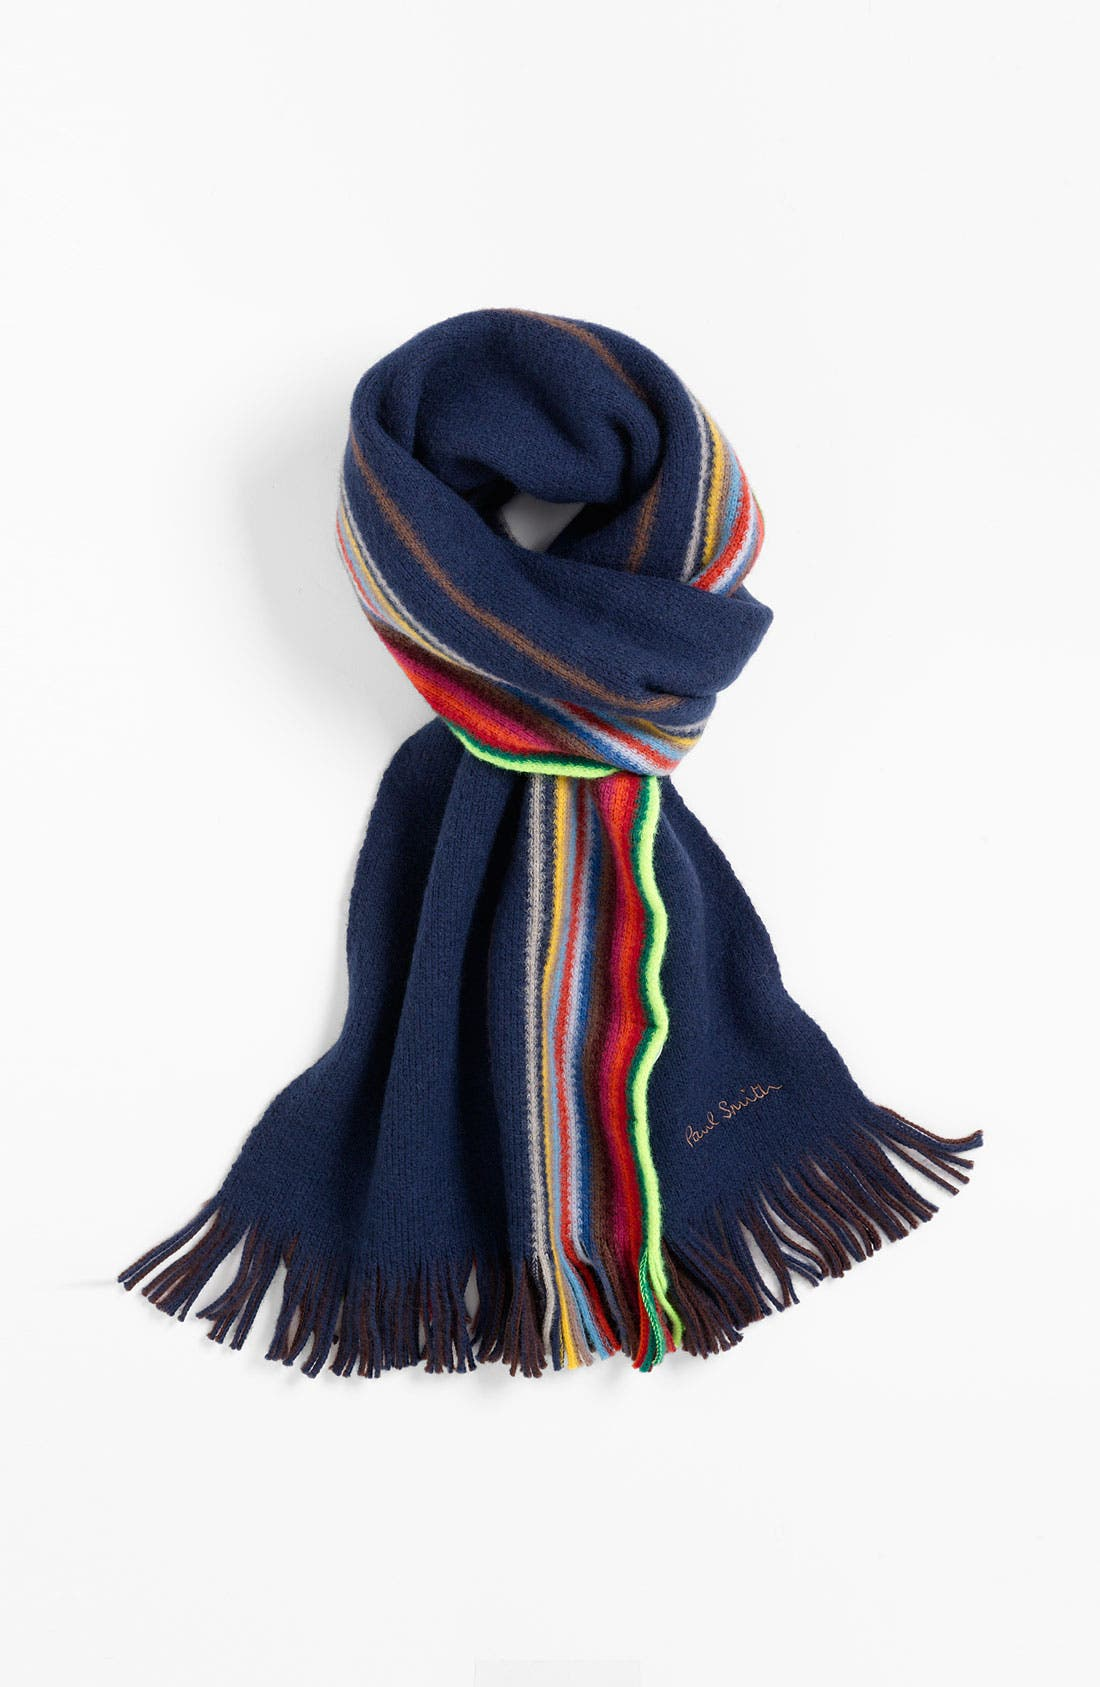 Alternate Image 1 Selected - Paul Smith Accessories Reversible Stripe Wool Scarf